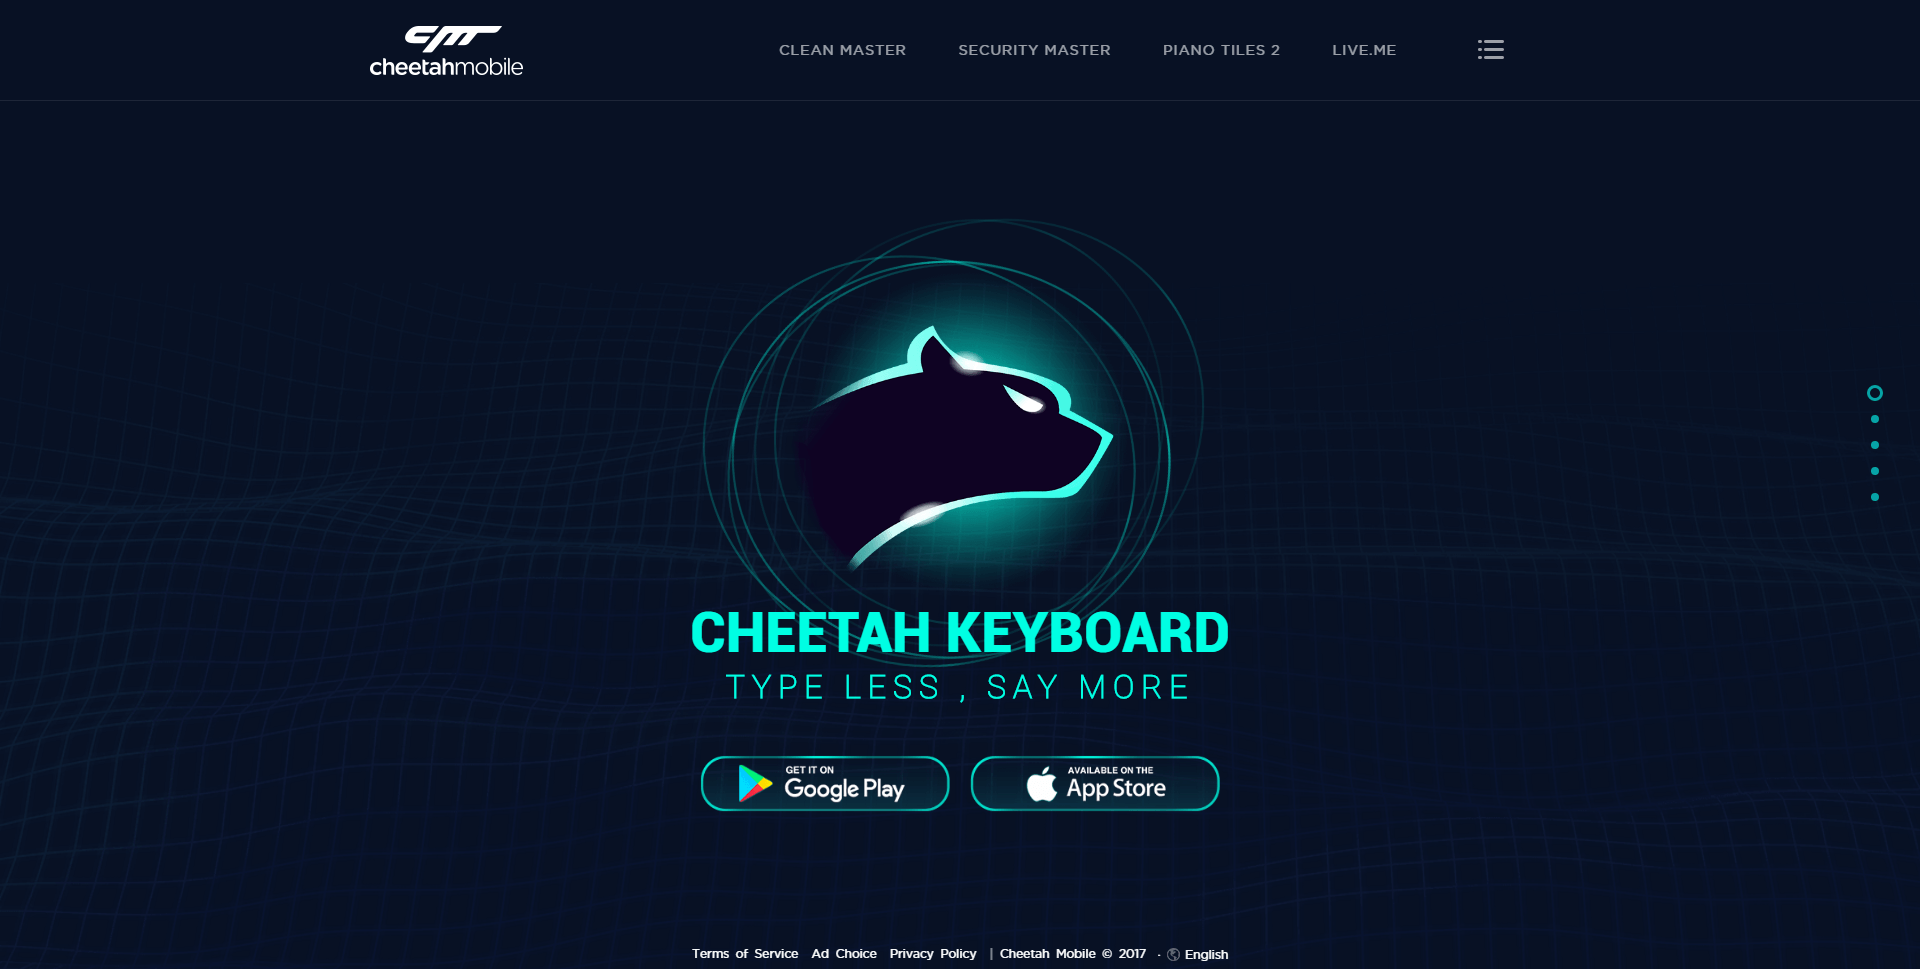 is cheetah keyboard safe